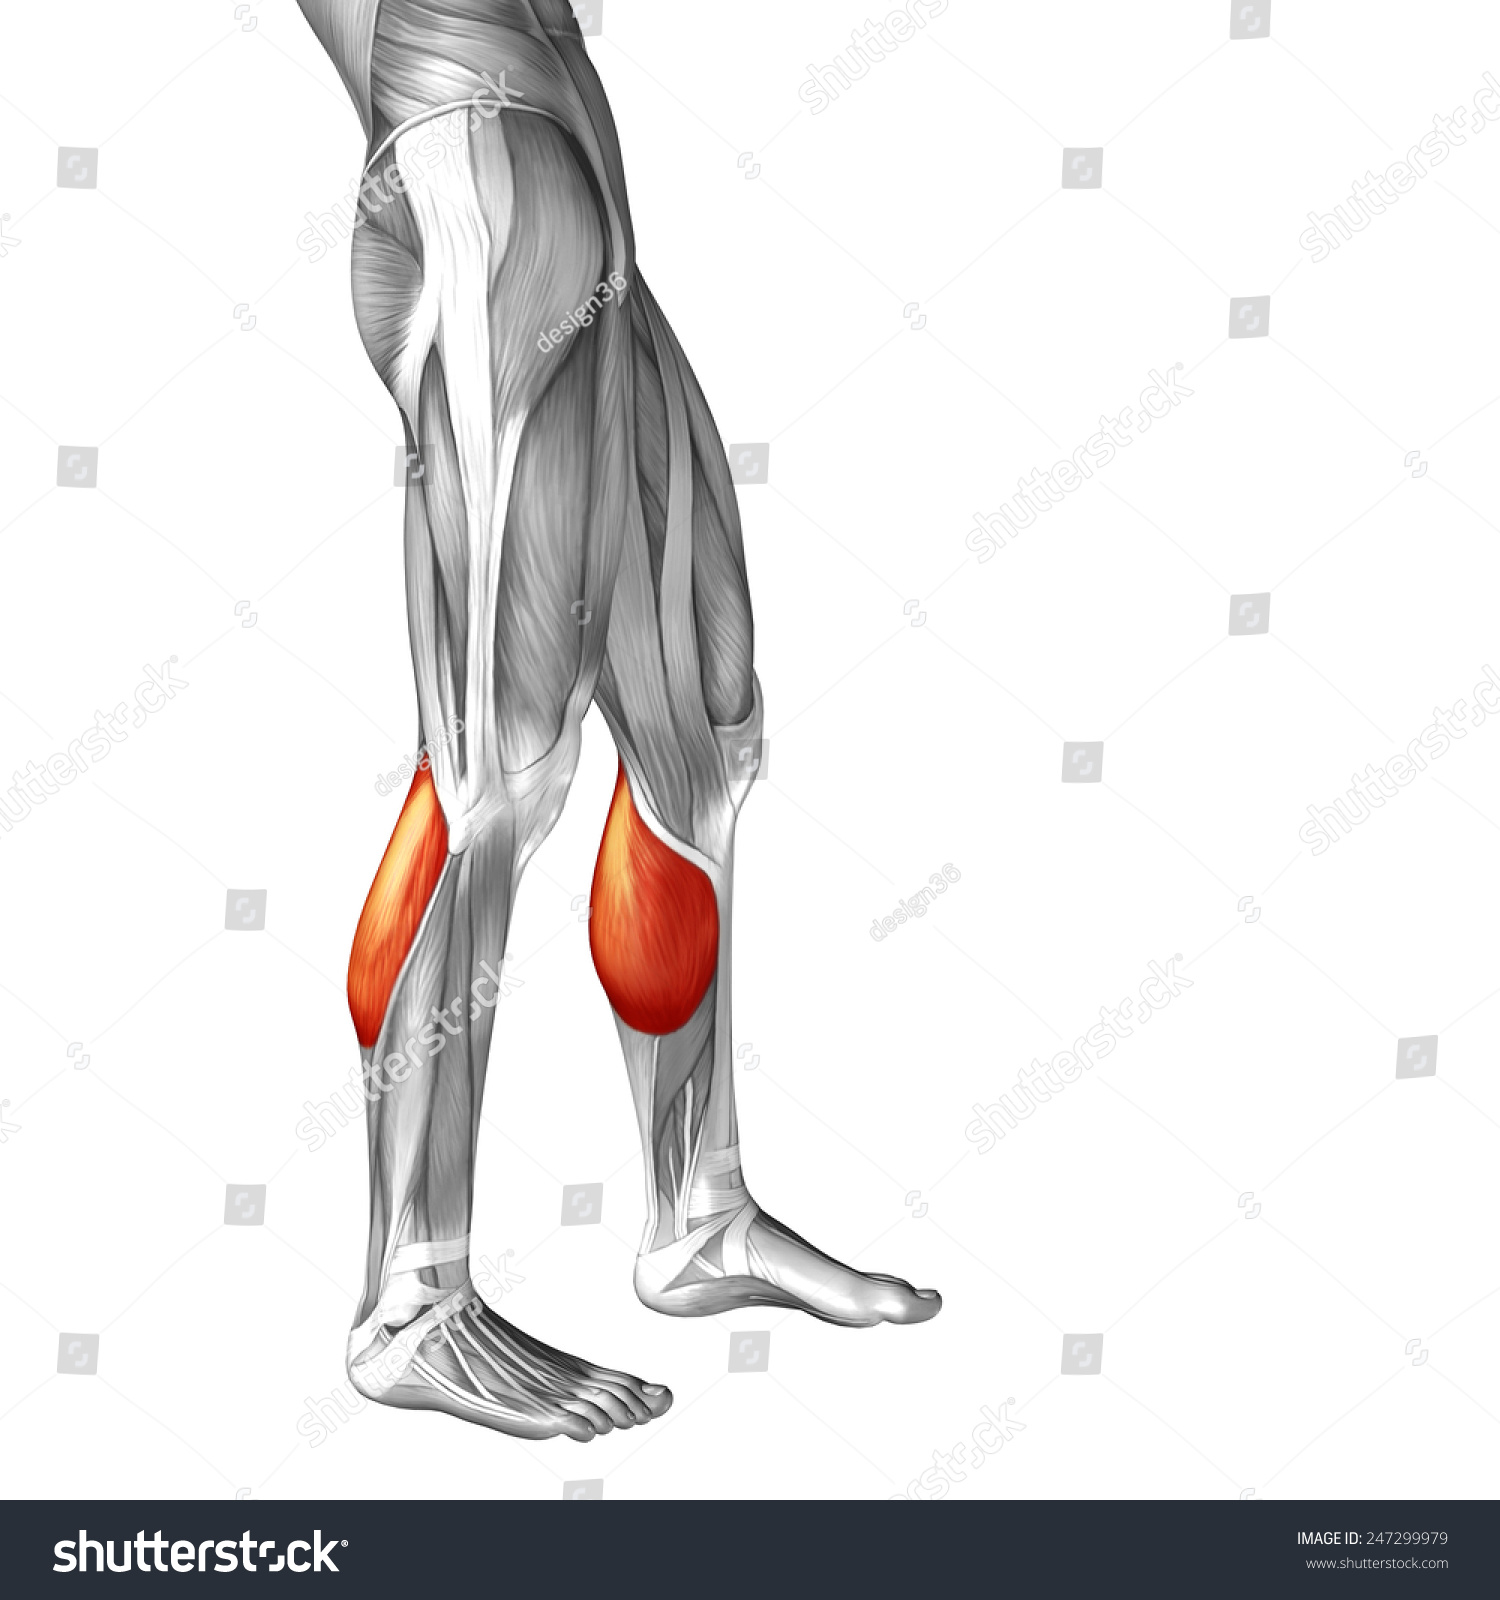 Conceptual 3 D Gastrocnemius Lower Leg Human Stock Illustration